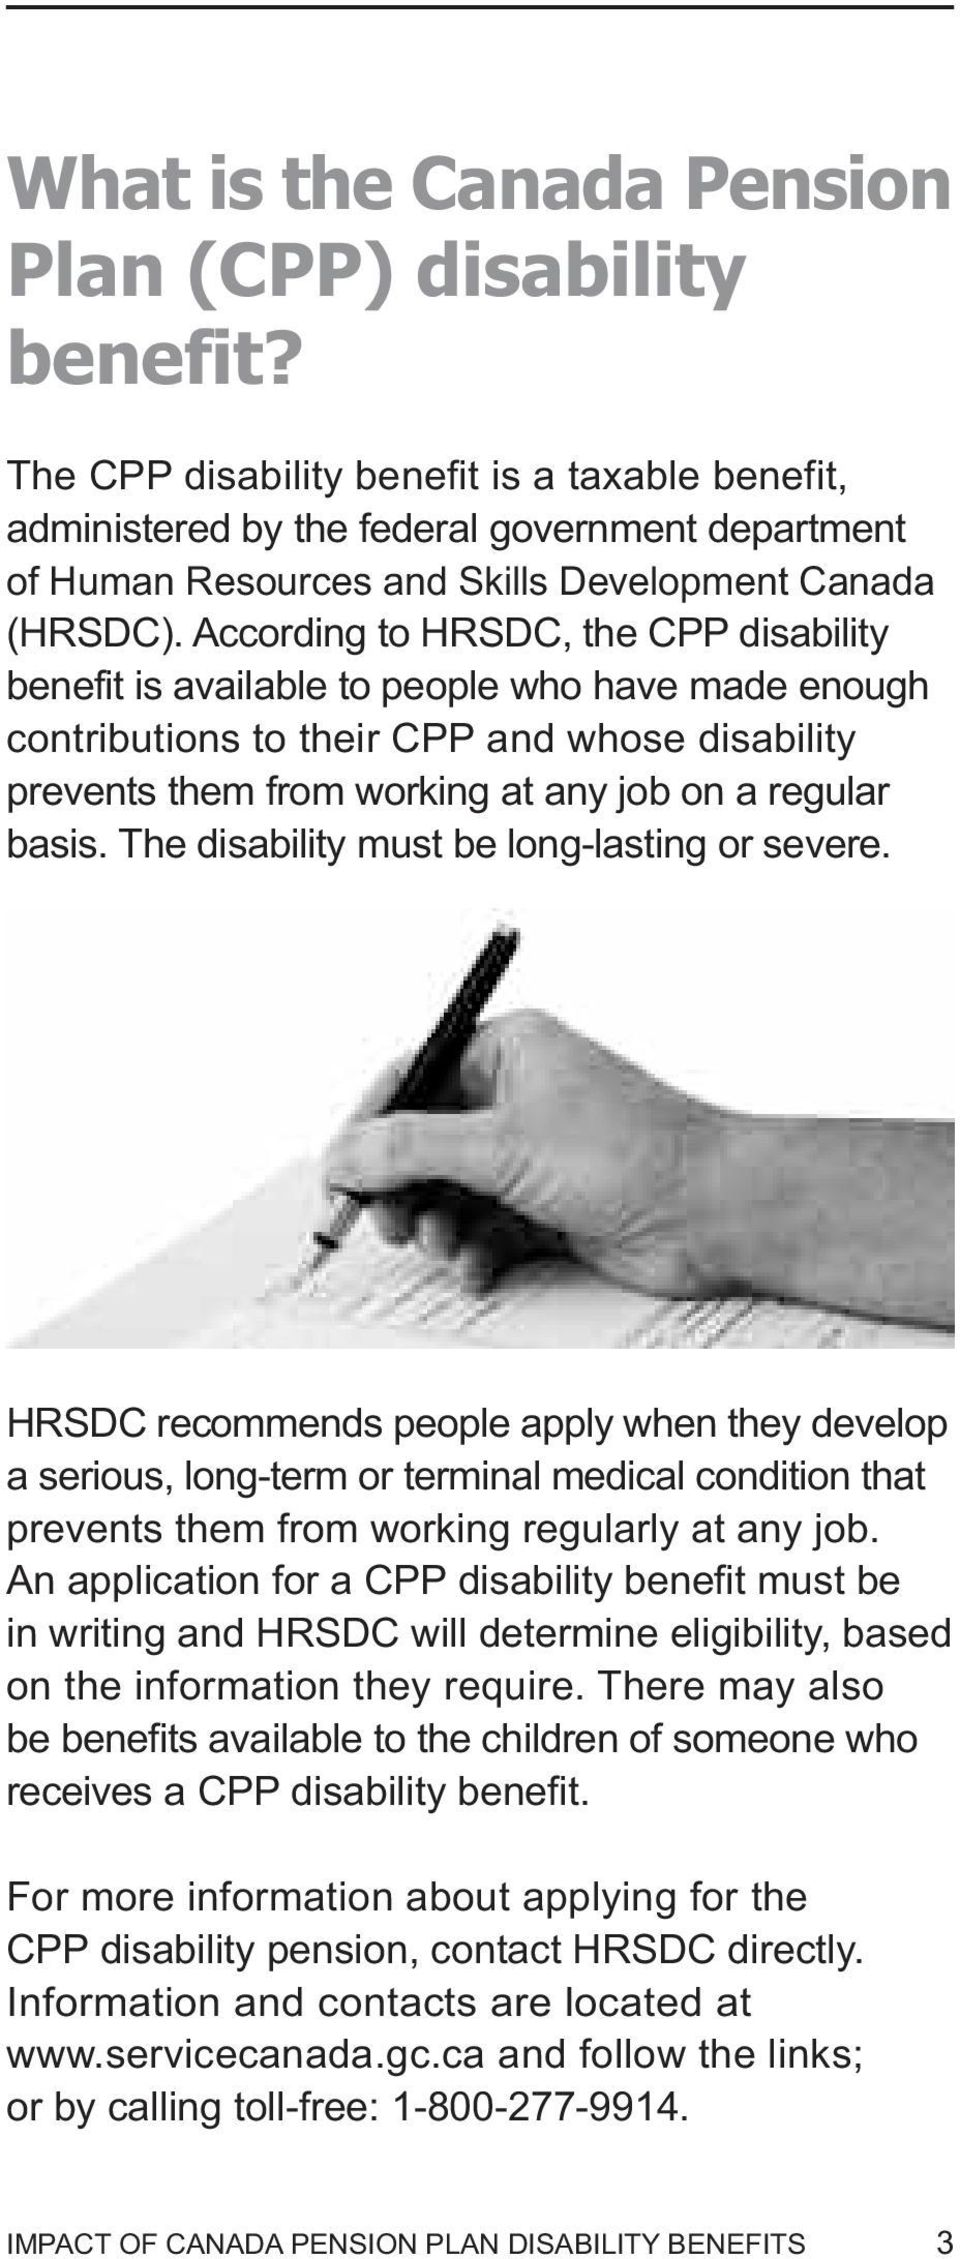 According to HRSDC, the CPP disability benefit is available to people who have made enough contributions to their CPP and whose disability prevents them from working at any job on a regular basis.